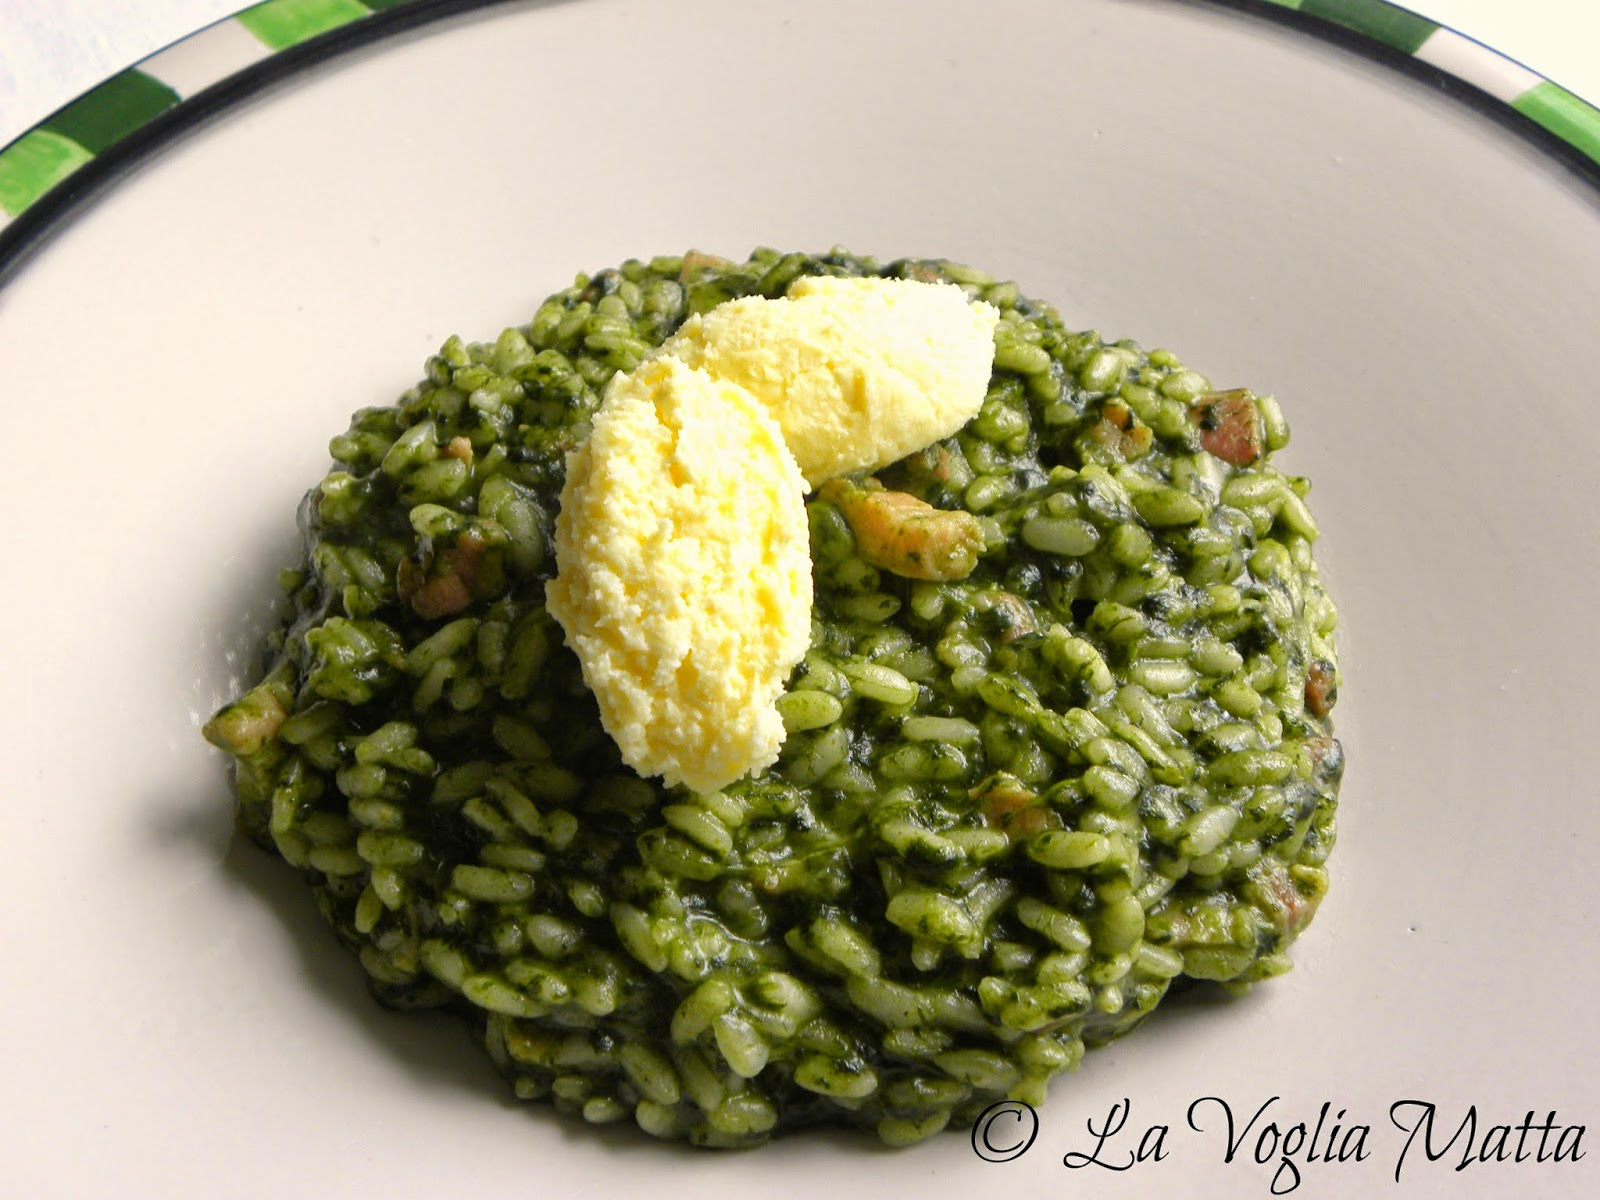 Pancetta pea asparagus farro risotto - Cook and Post